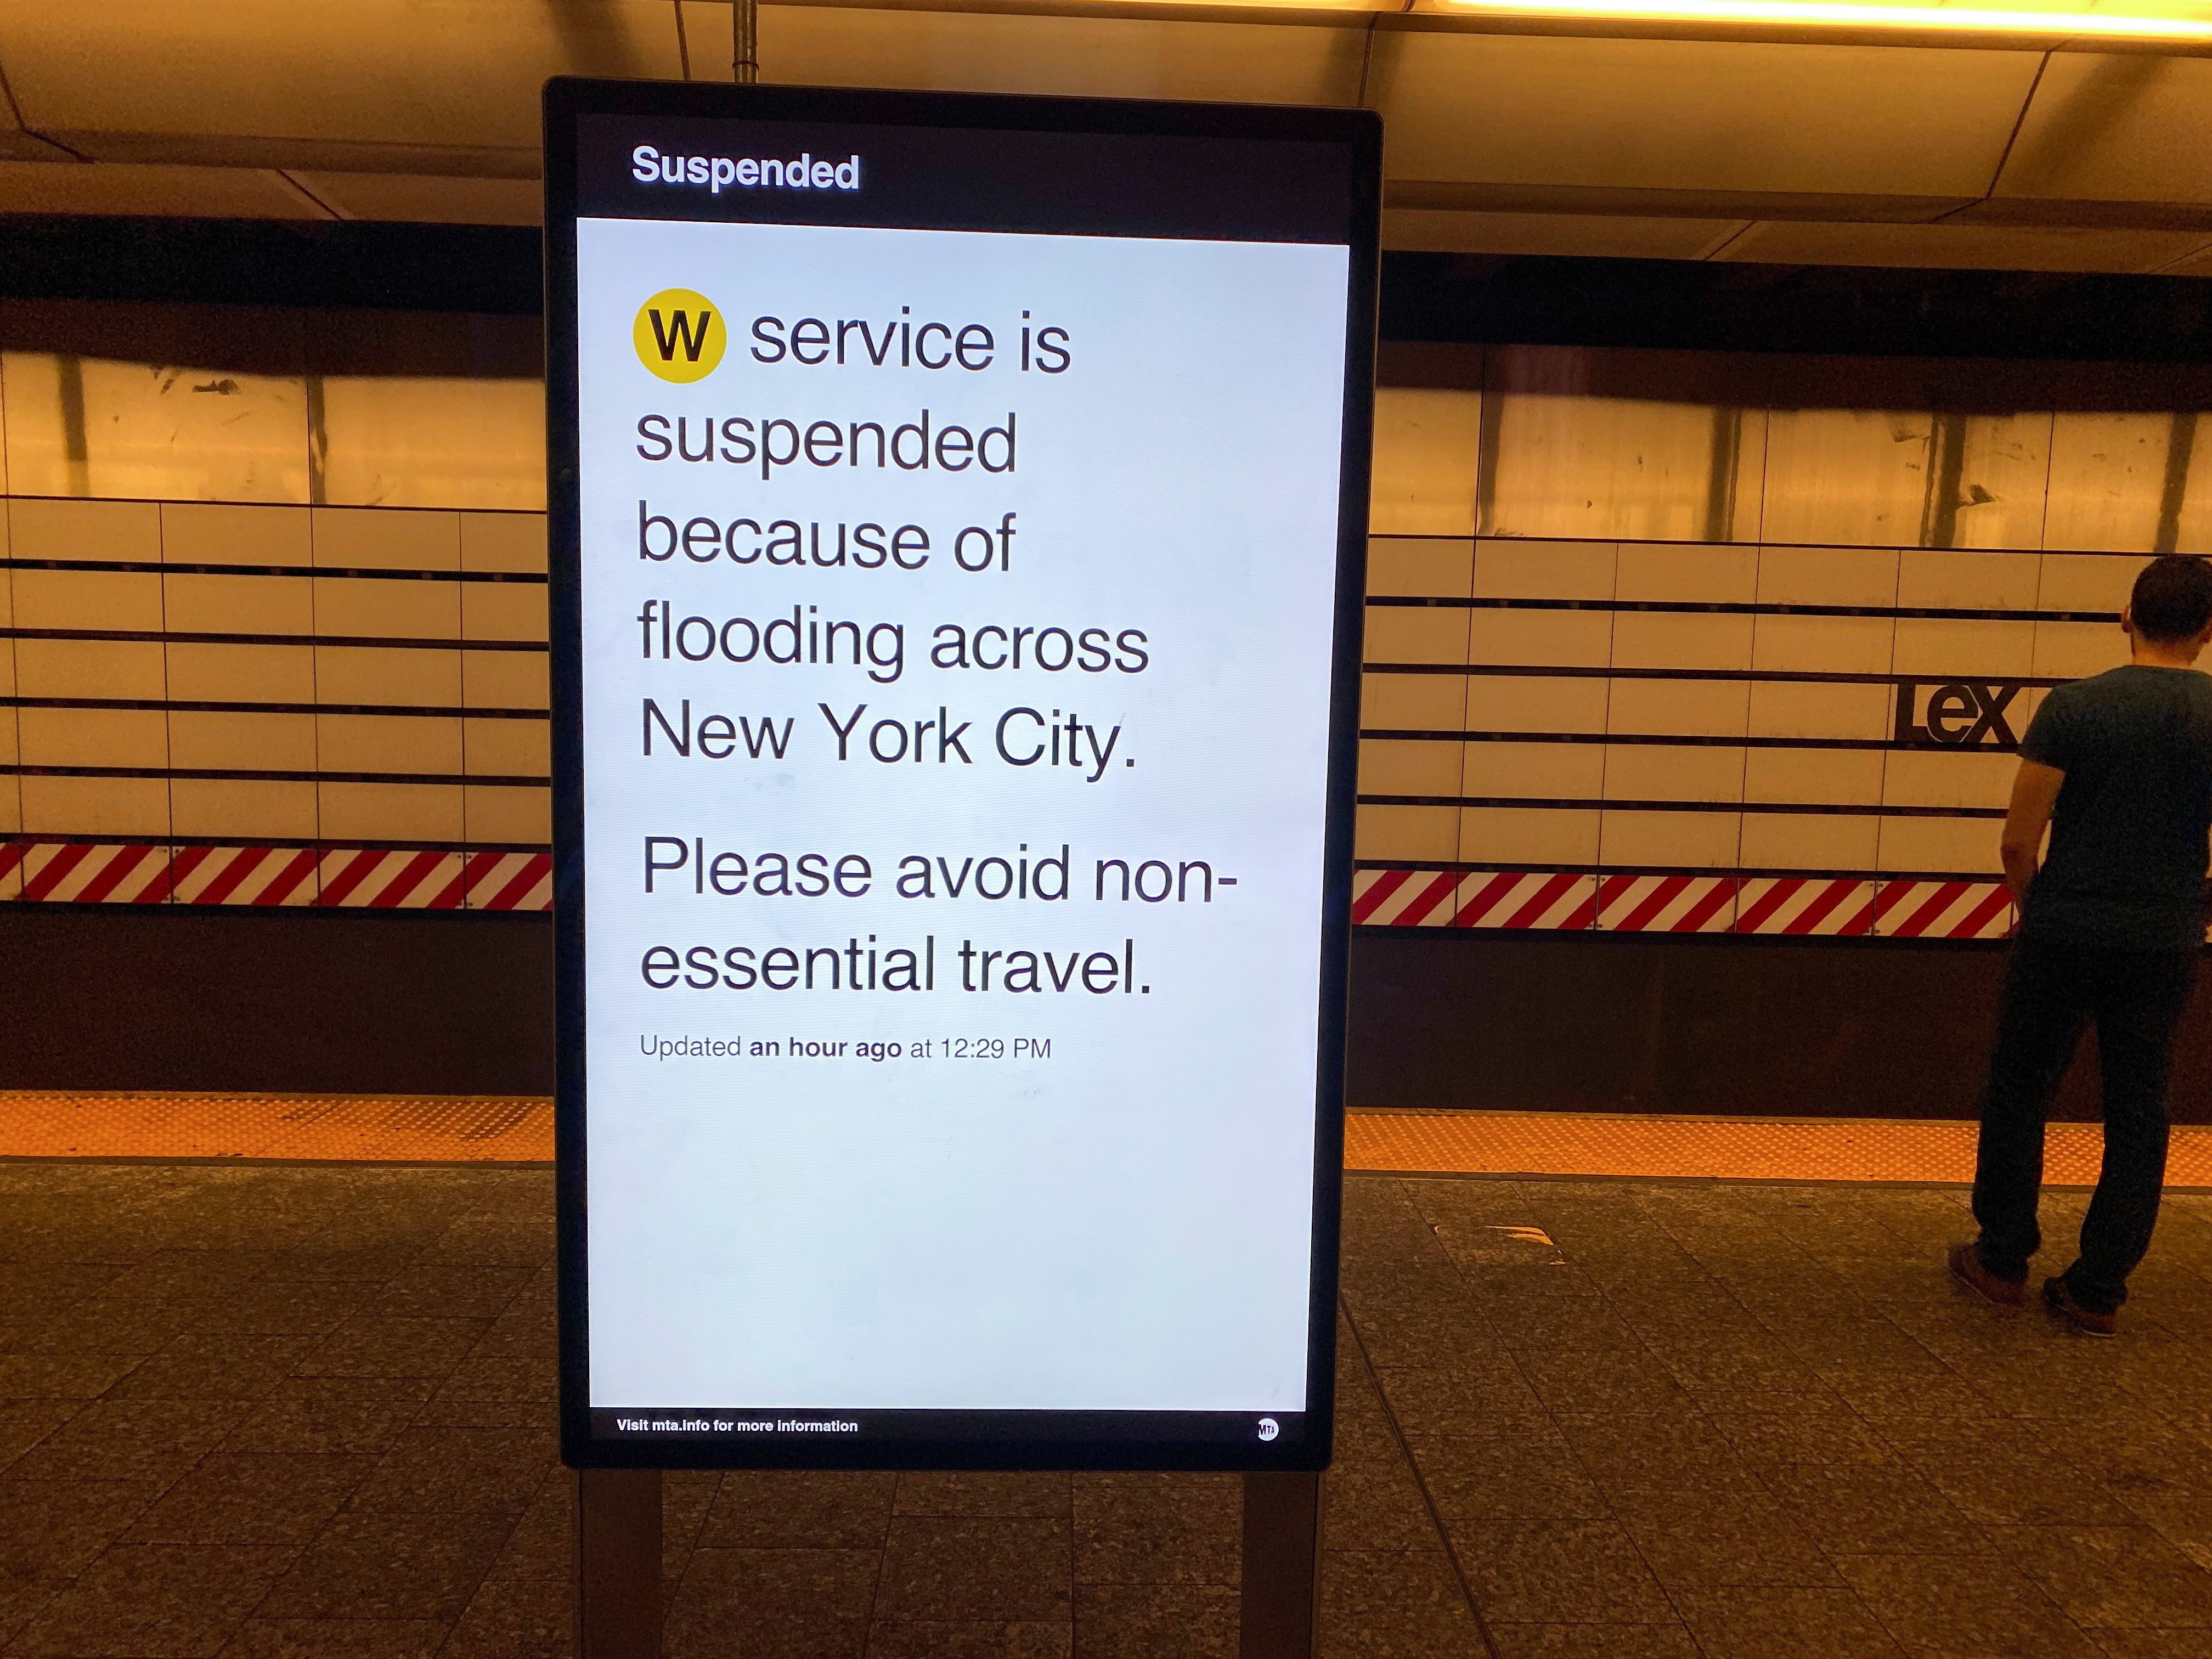 a subway service notice explains to travellers that the service is suspended due to flooding